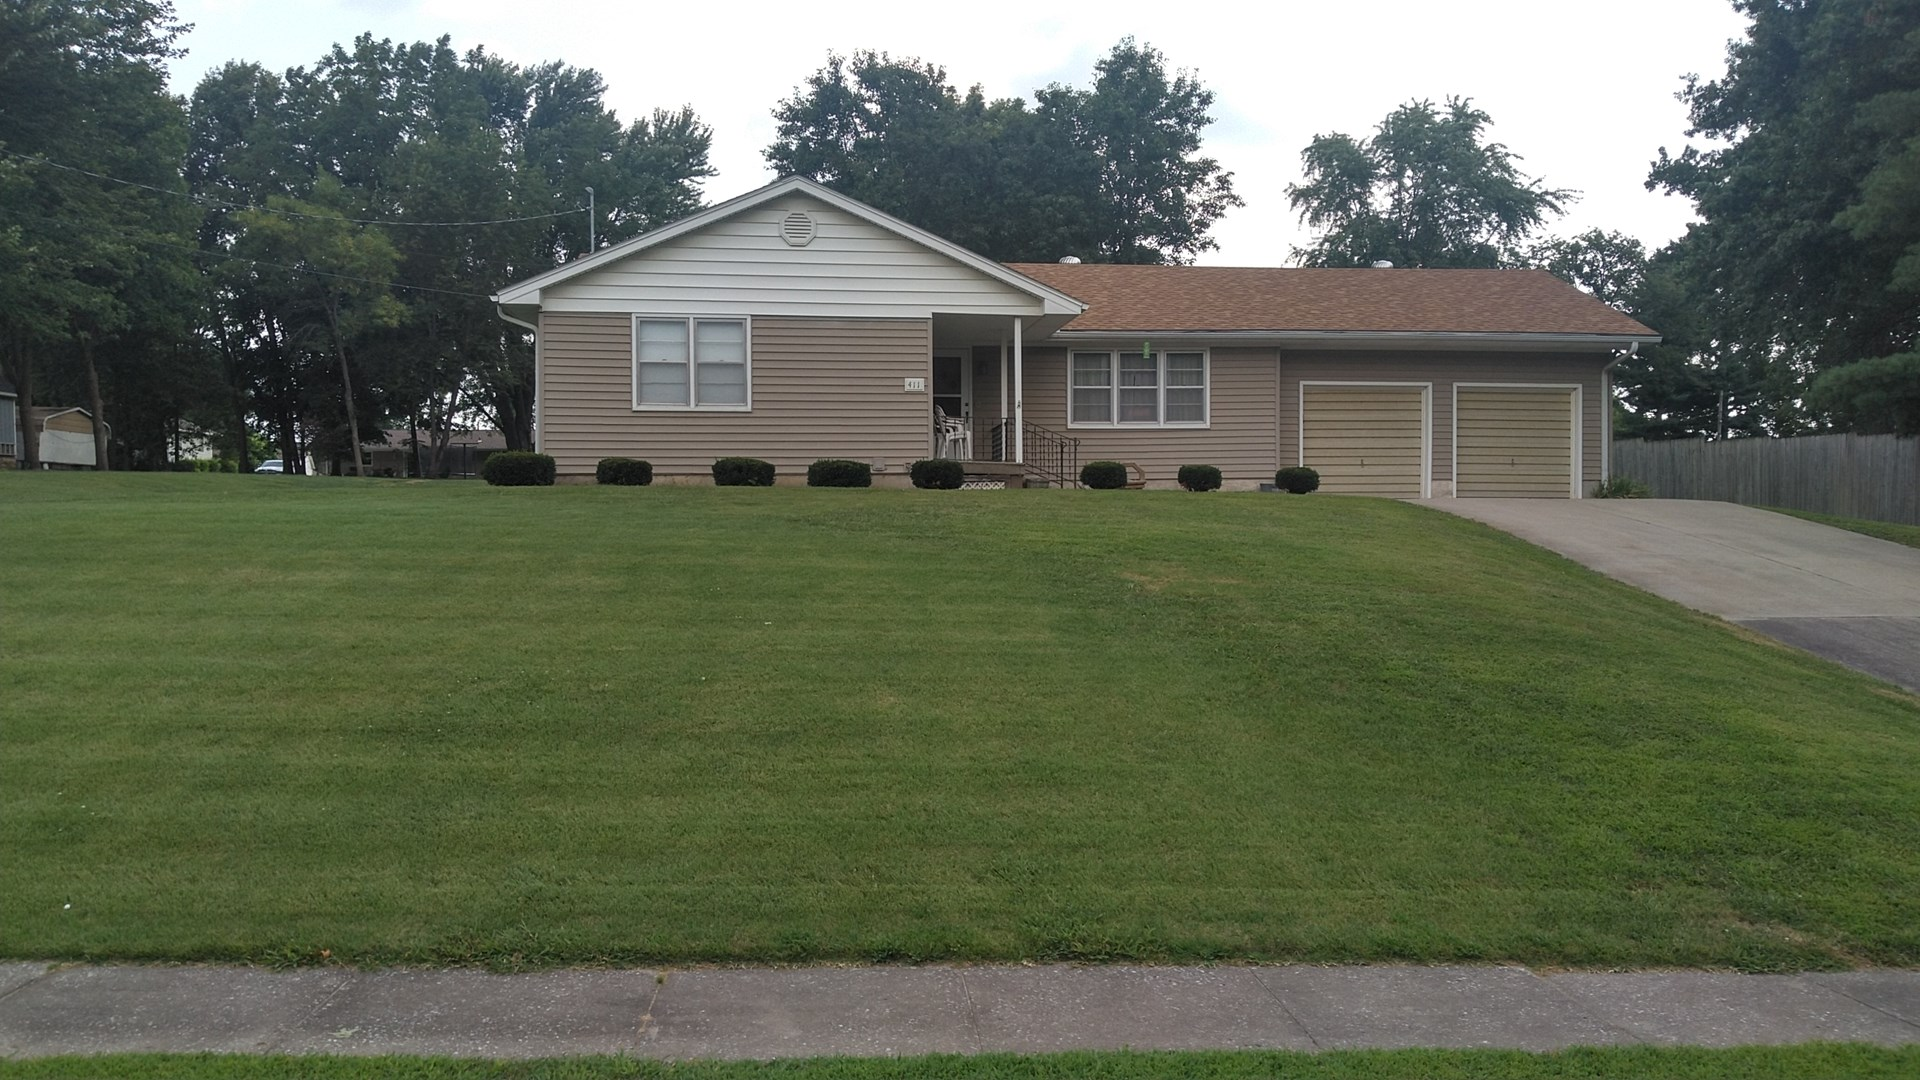 Charming home for sale in Marshall, MO